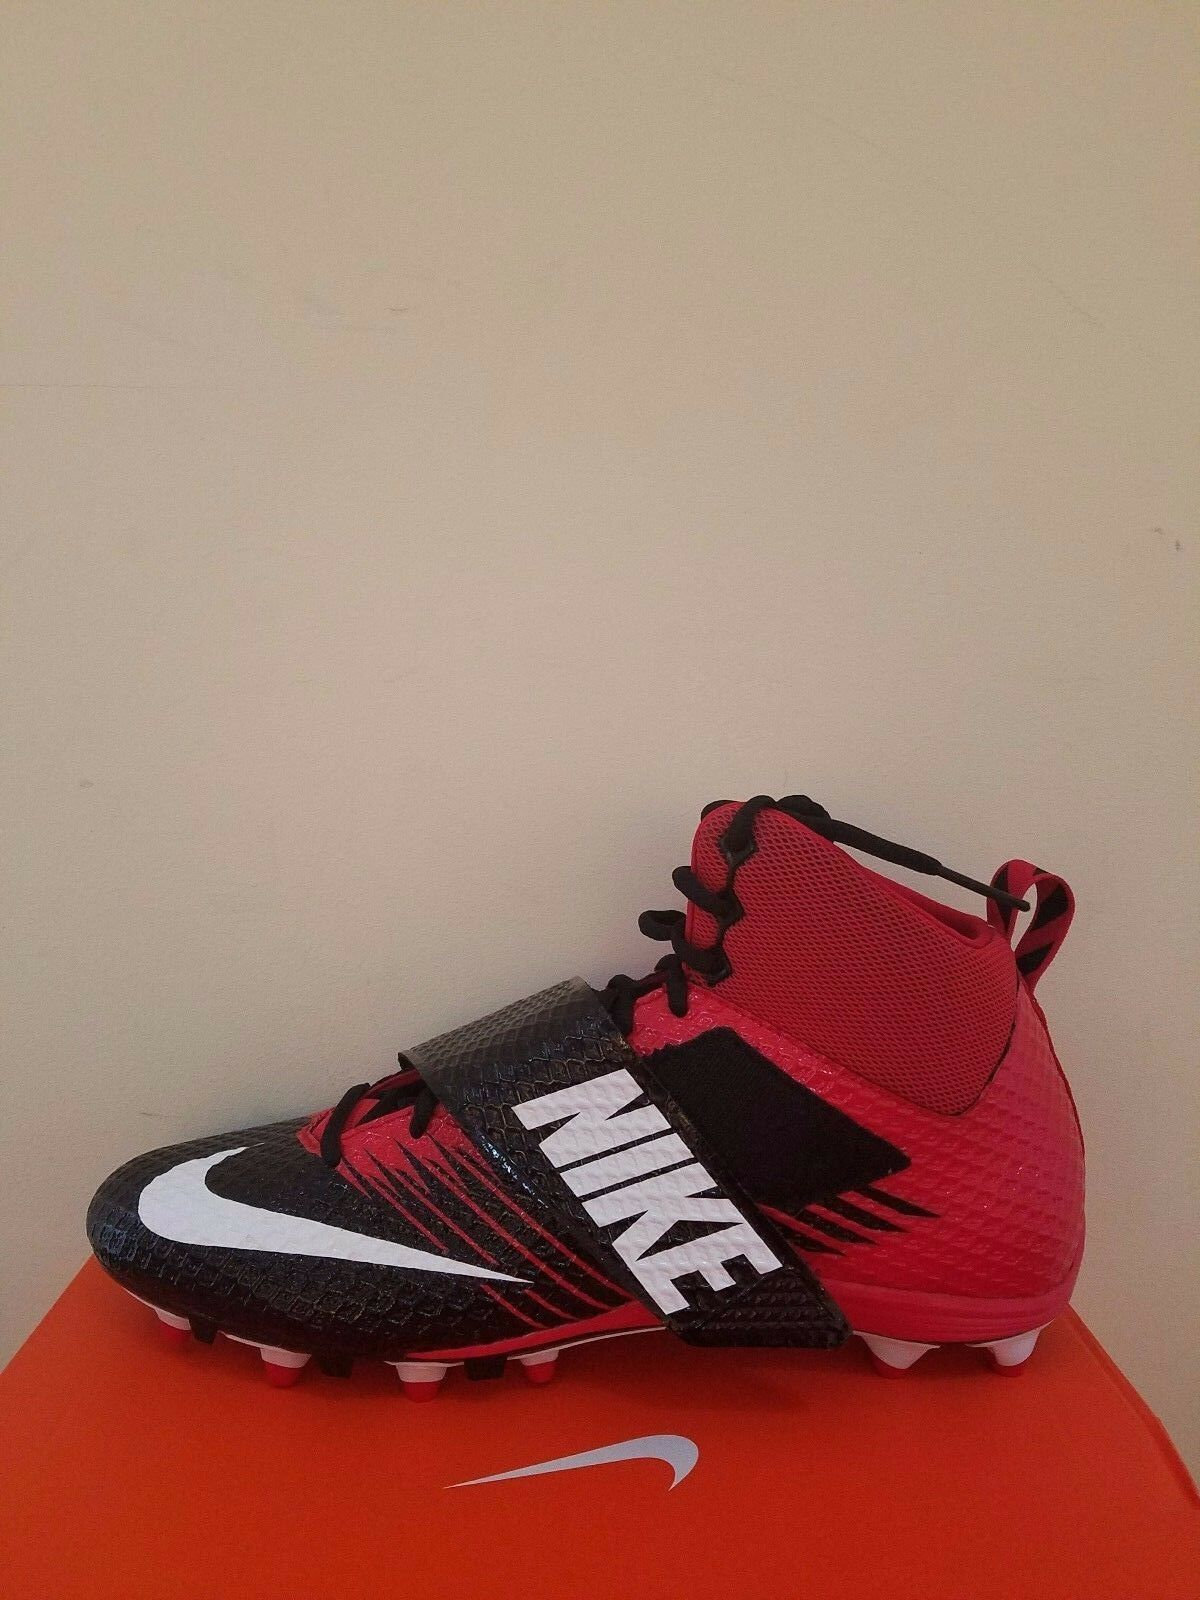 Nike Men's  Lunarbeast Pro TD Football Cleat Comfortable Cheap and beautiful fashion